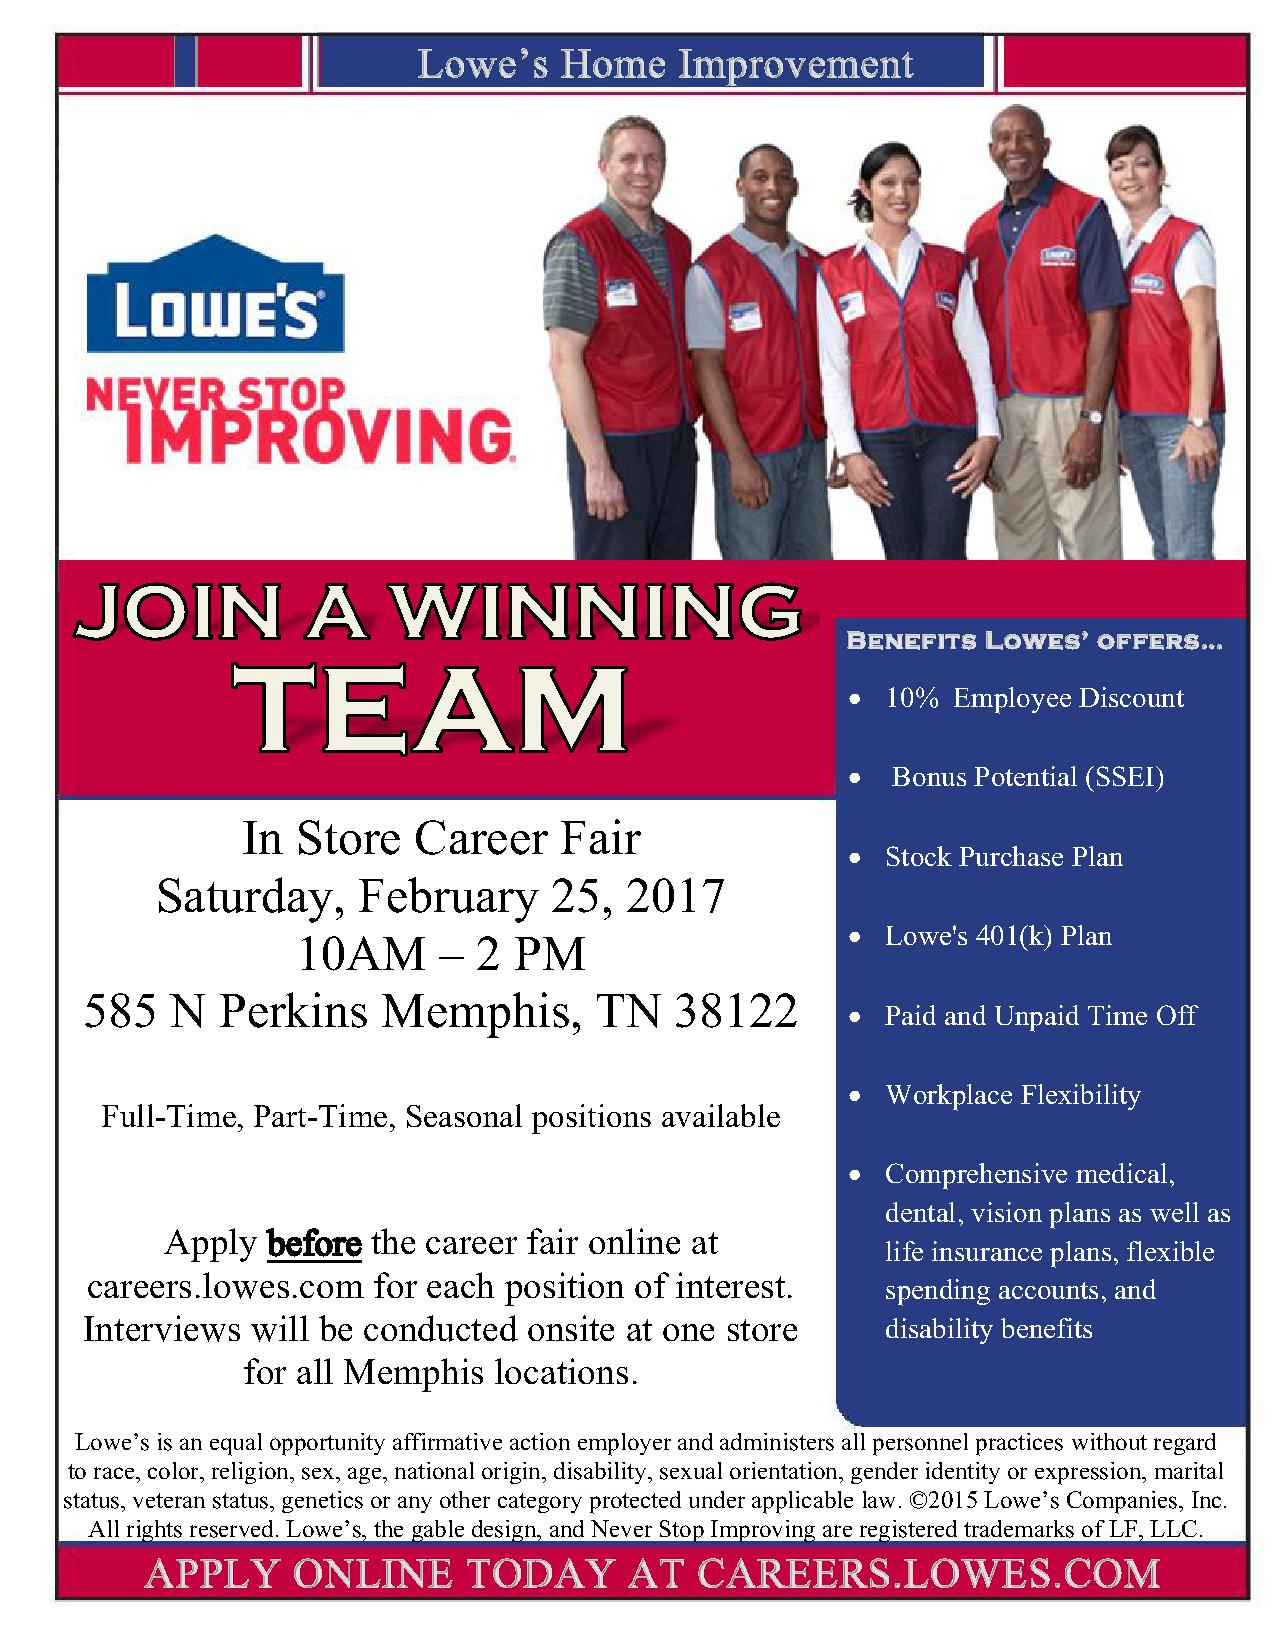 Lowes Employee Benefits >> Lowe S Career Fair 2 25 16 10 2 Job Career News From The